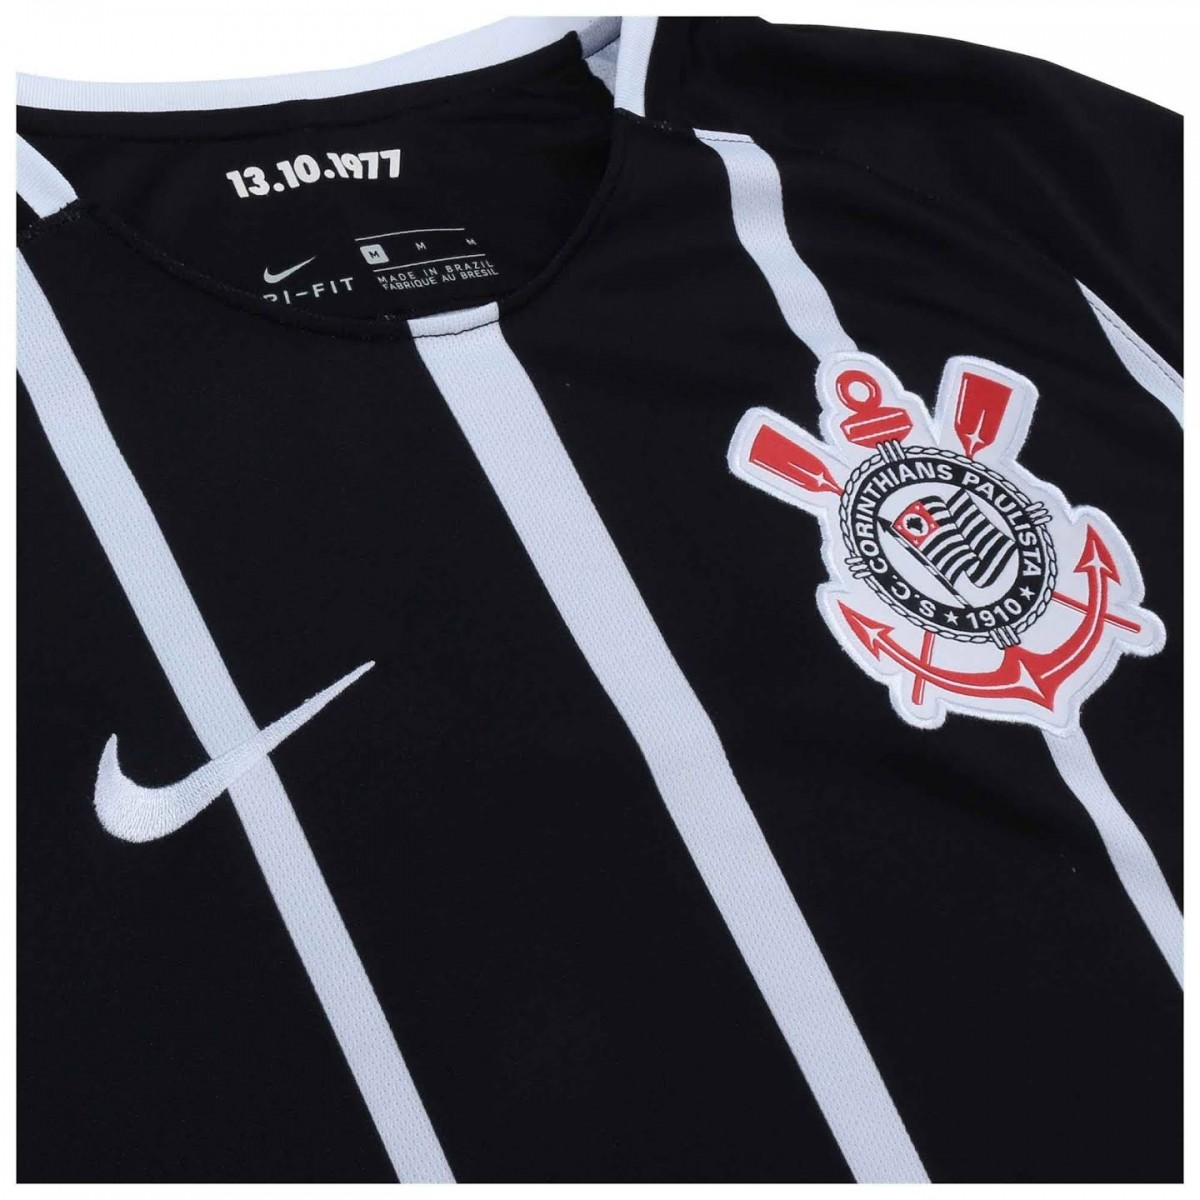 CAMISA CORINTHIANS OF.2 AWAY 2017/2018 JUVENIL